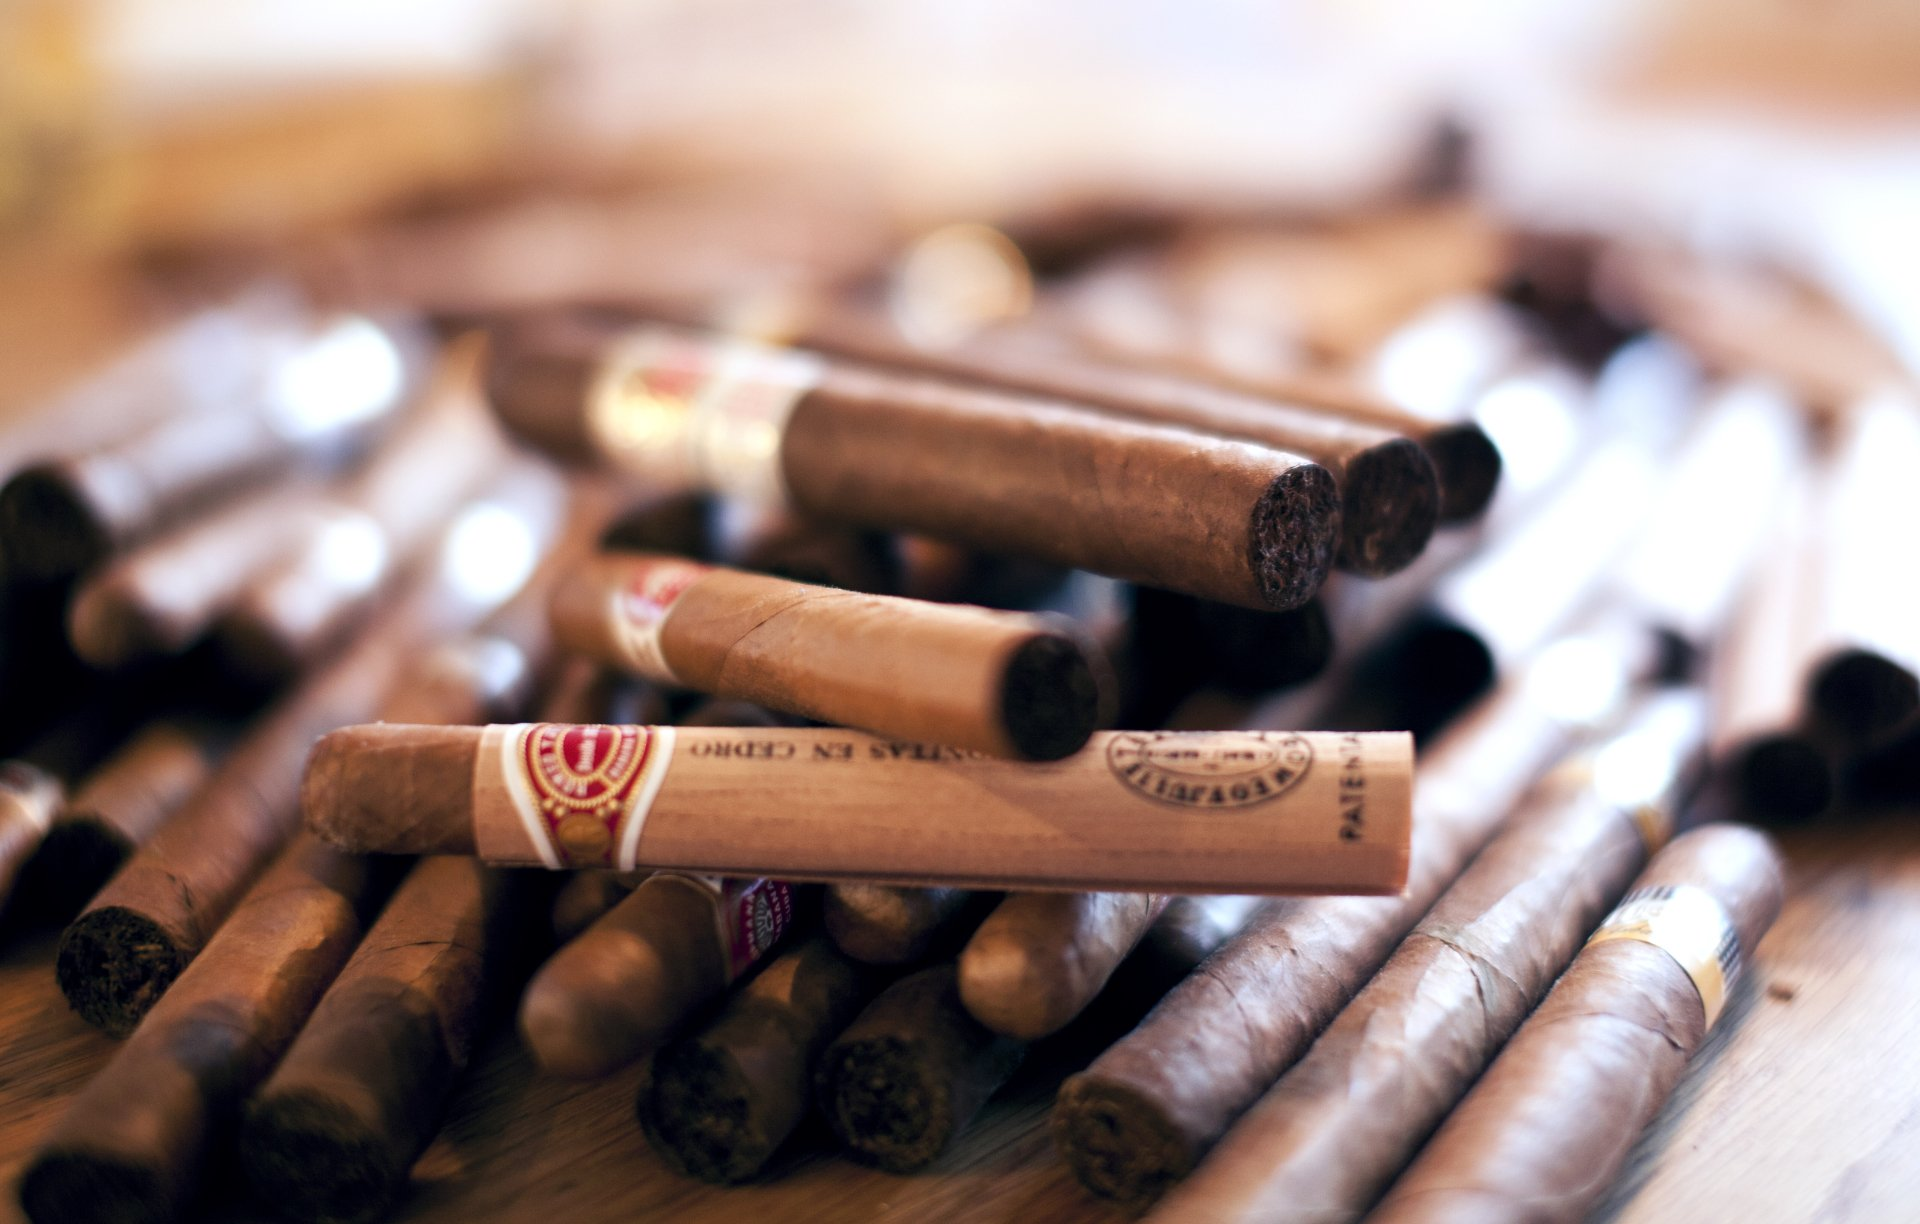 Luxurious cigars suits your personality and class in society